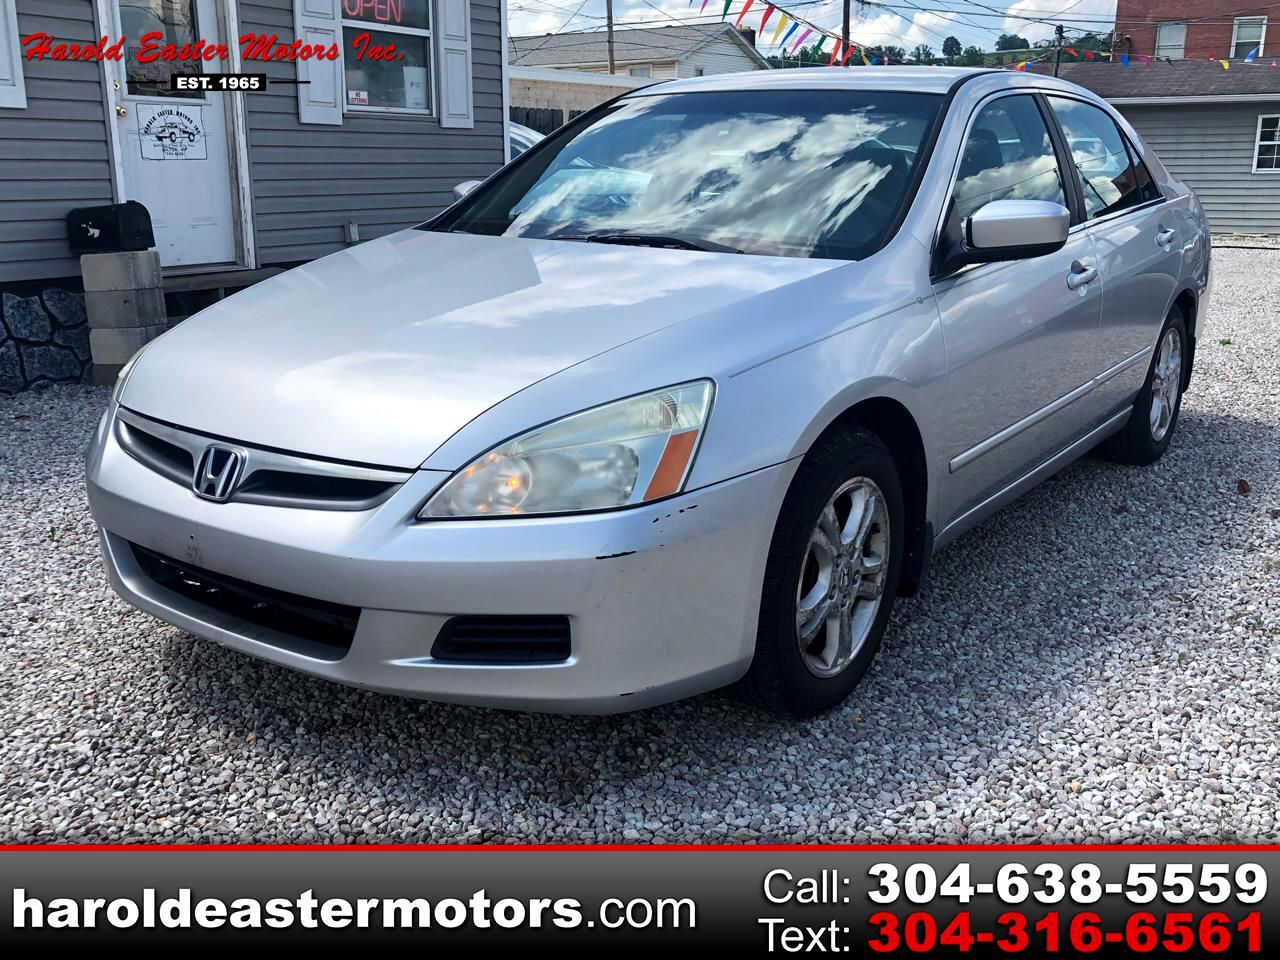 Honda Accord LX SE Sedan 2006